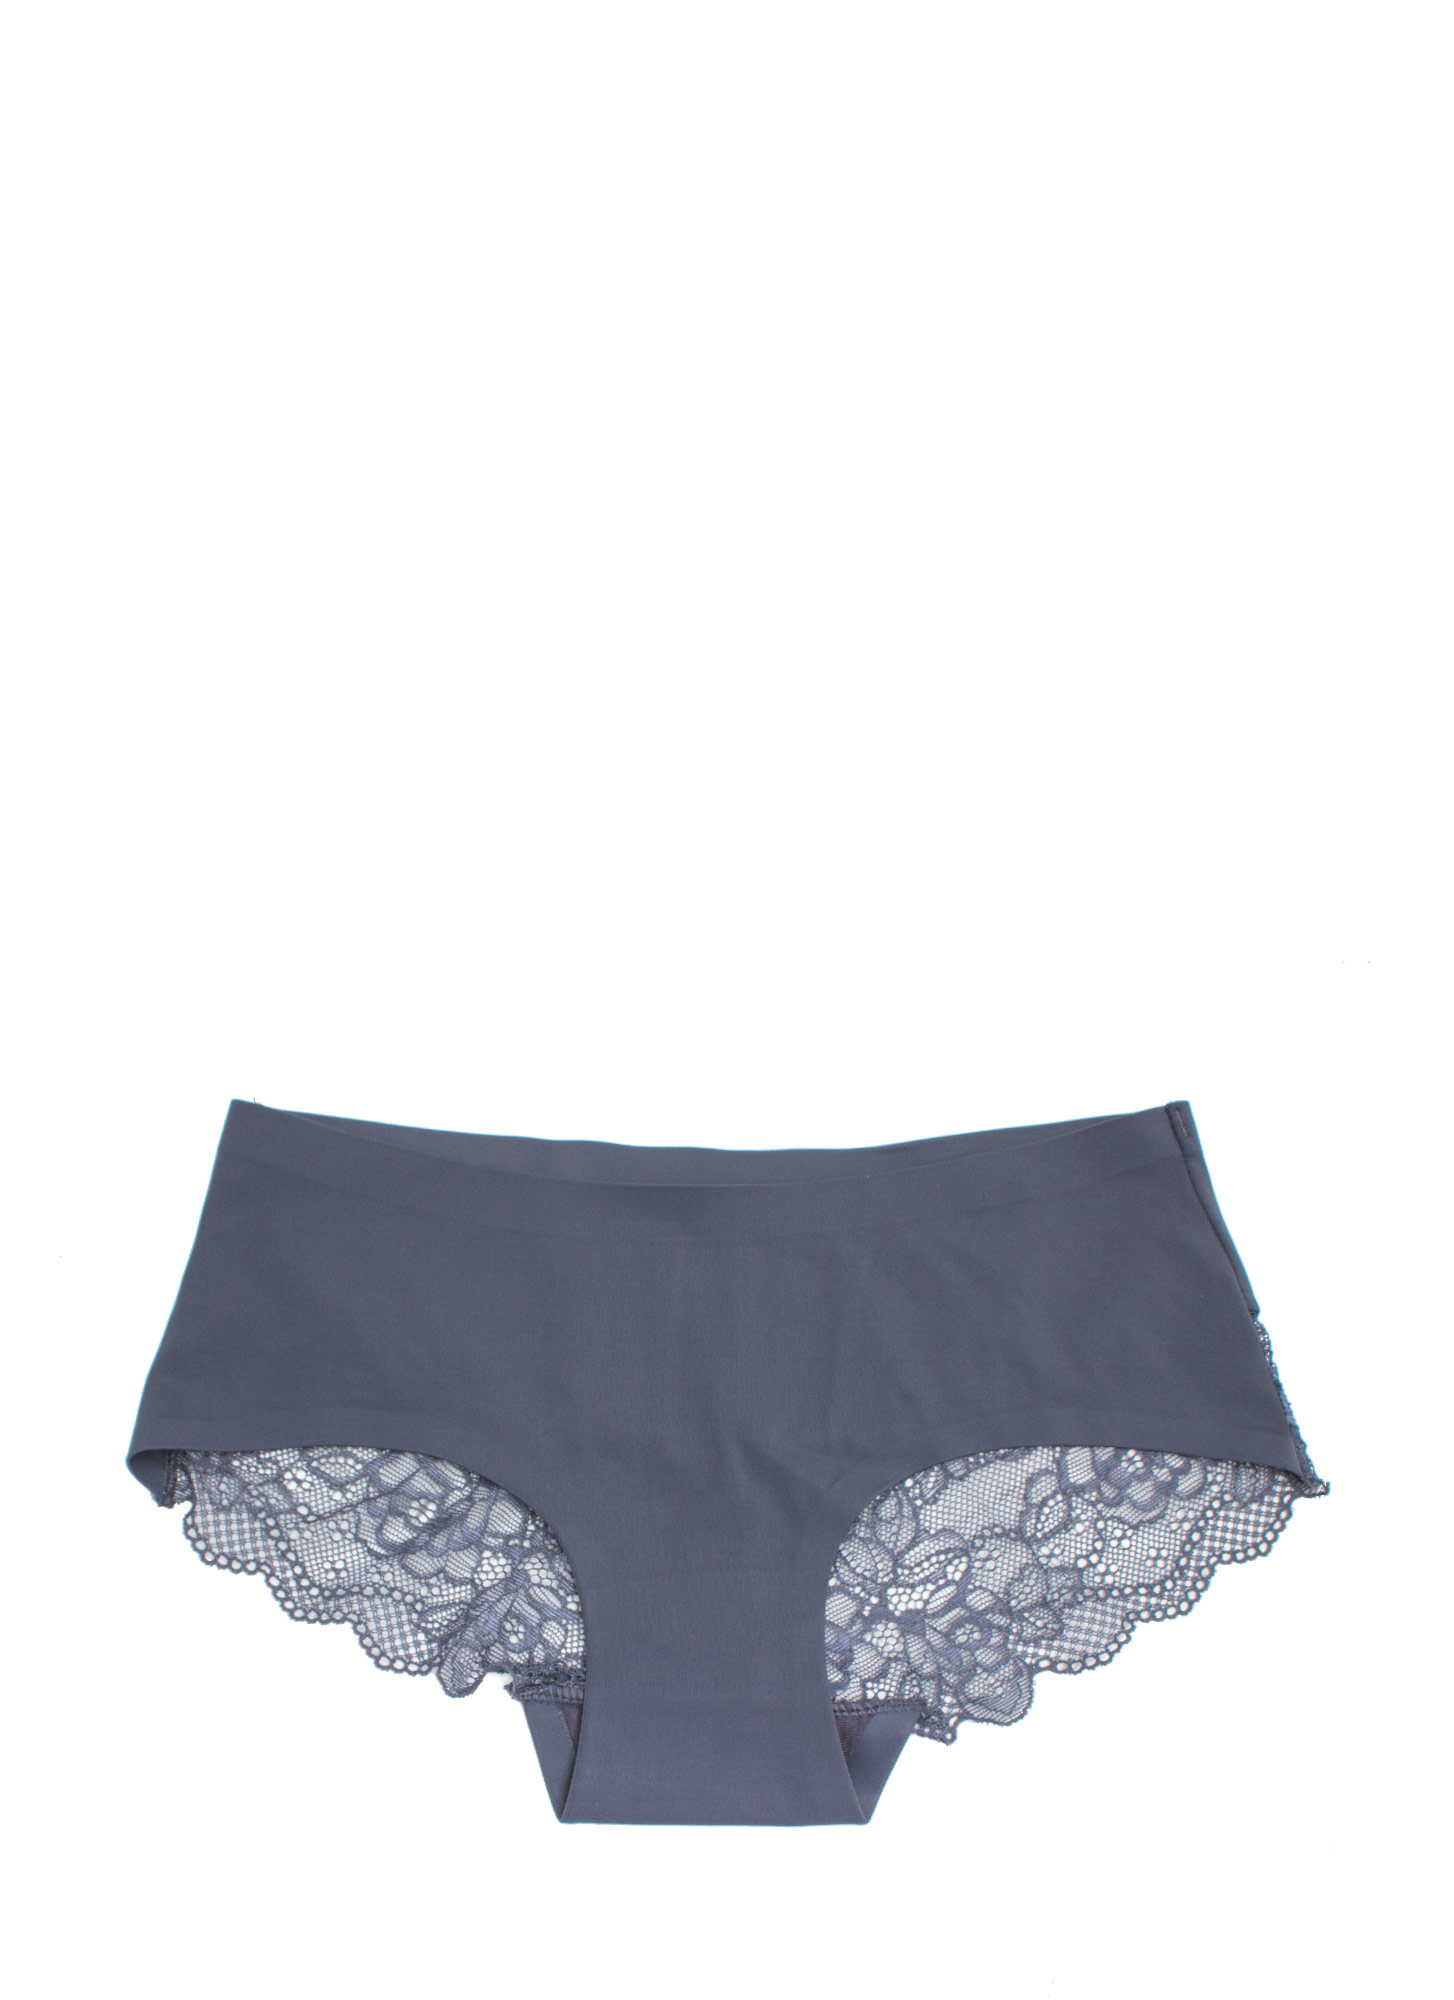 Lace Yourself Seamless Briefs CHARCOAL